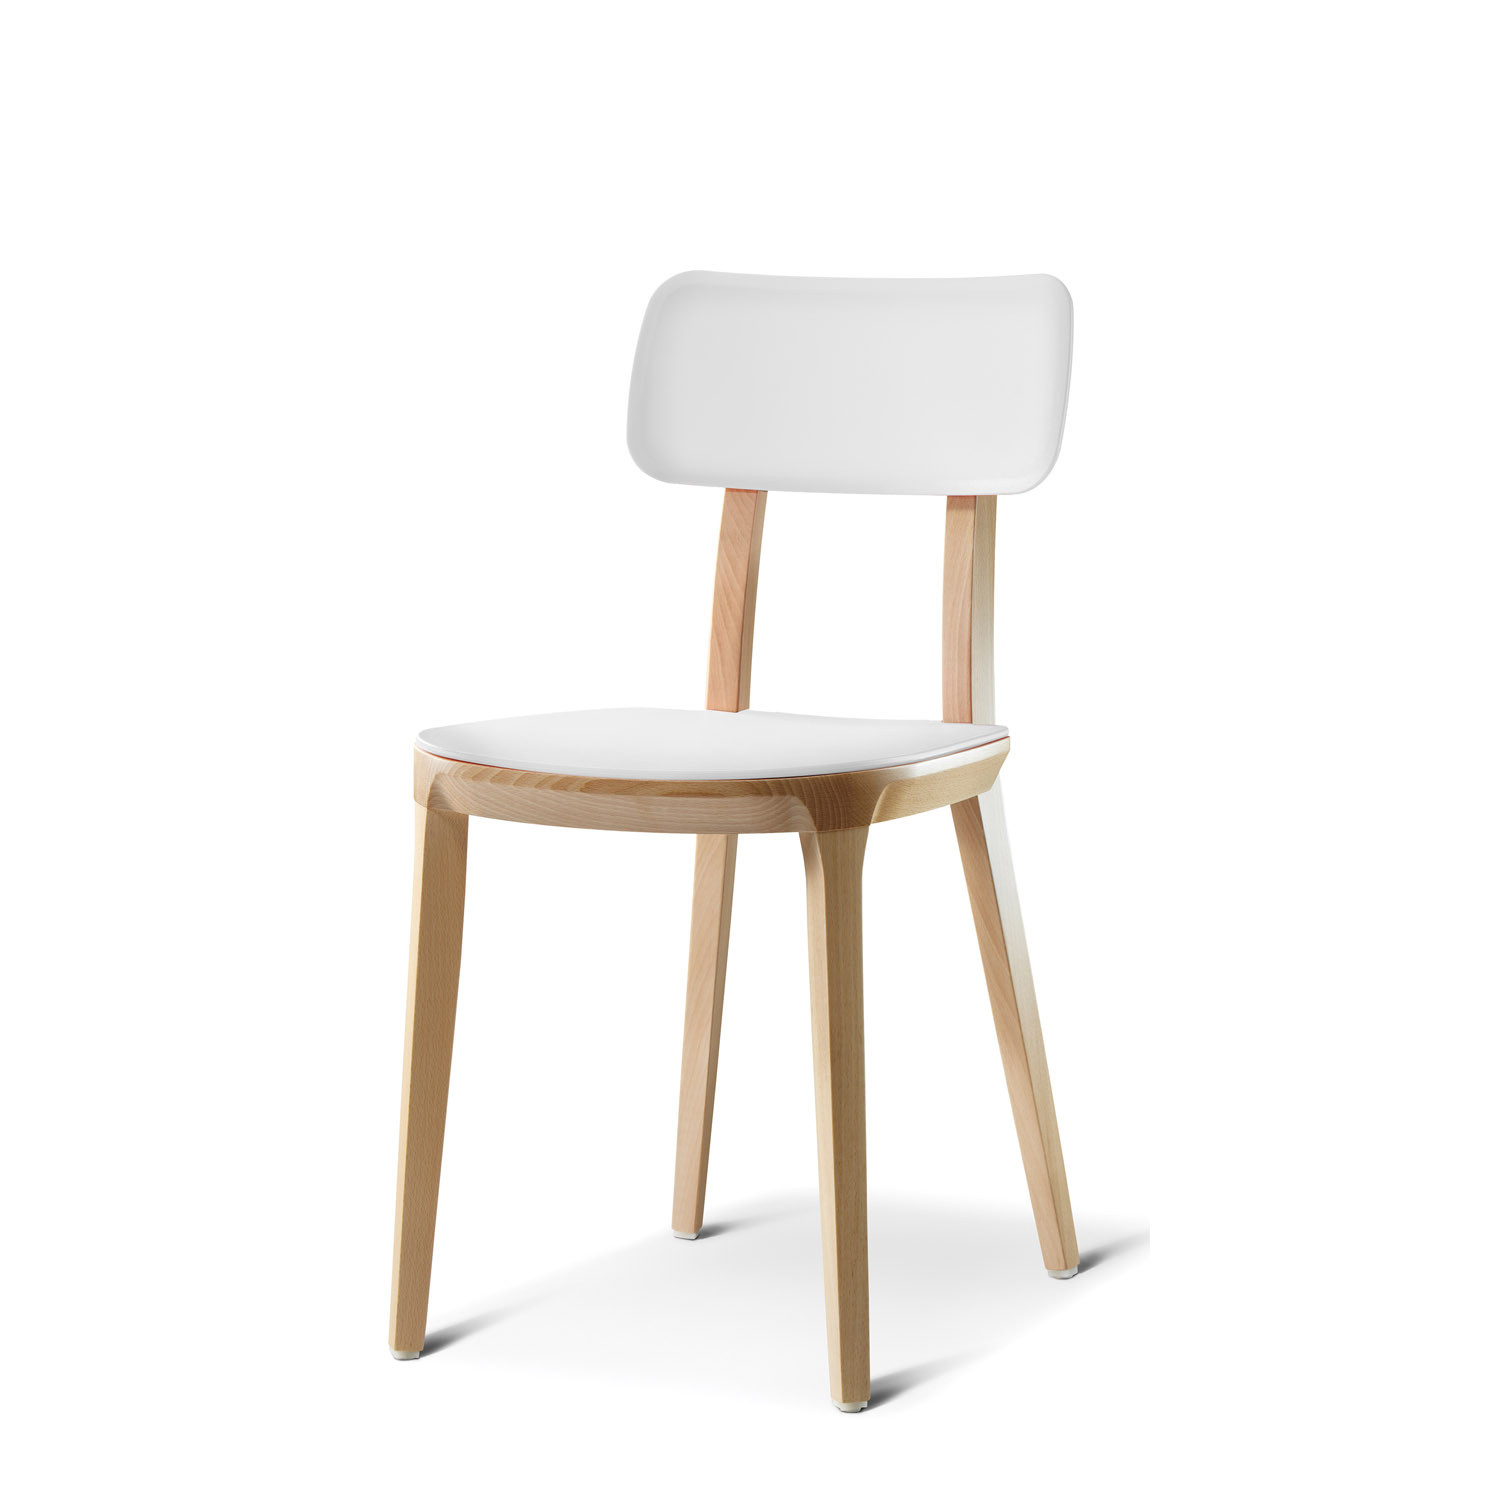 Retro Breakout Chair MRT1 | Solid Wood Cafe Chairs | Apres ...